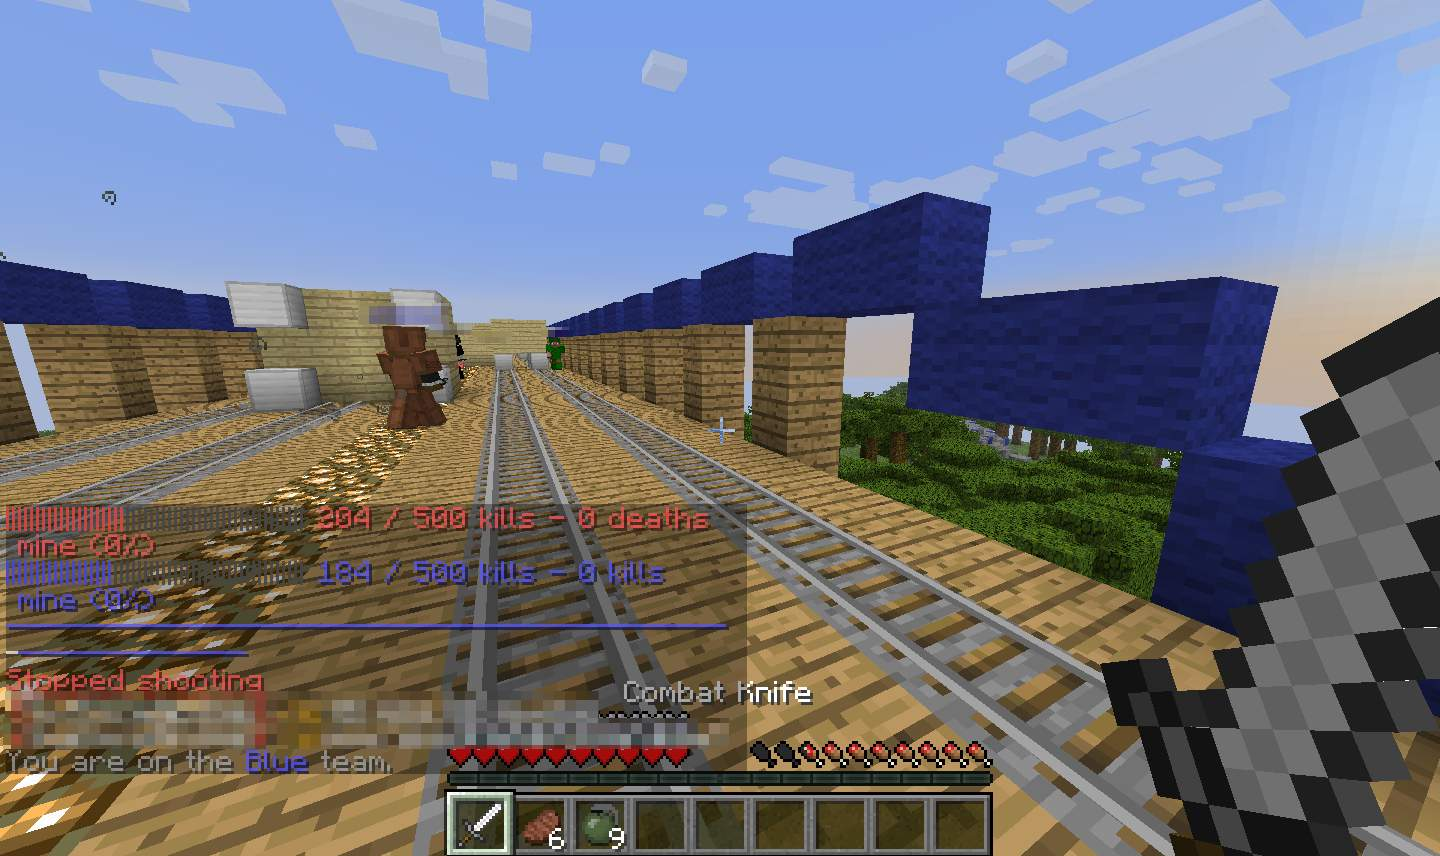 teamdeathmatch-minecraft-headshot-server-grenade-005